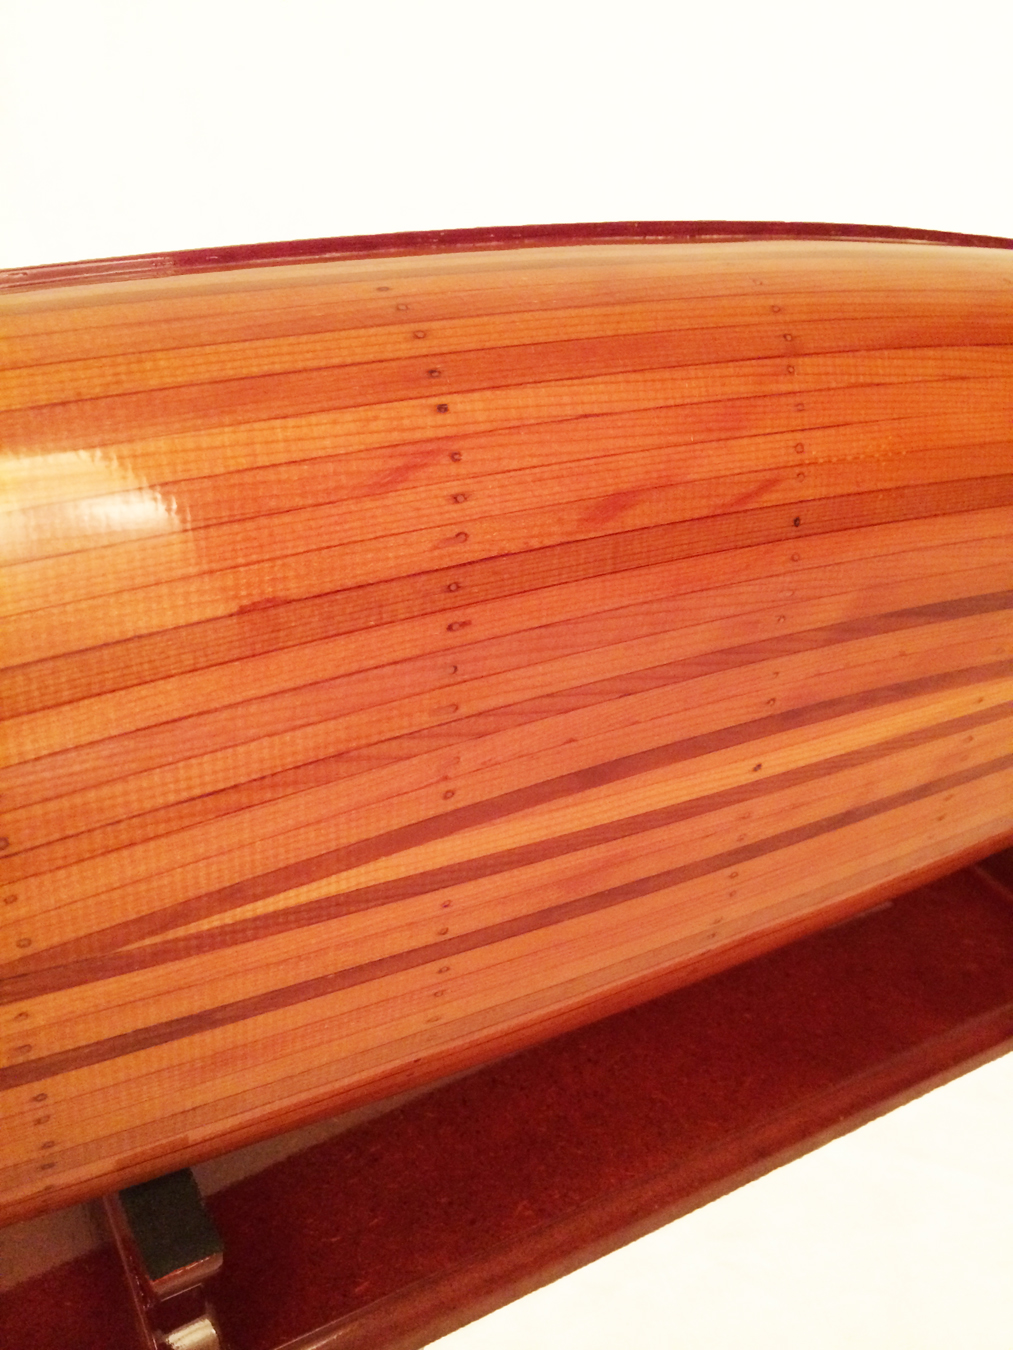 test miniature cedar wood canoe 02